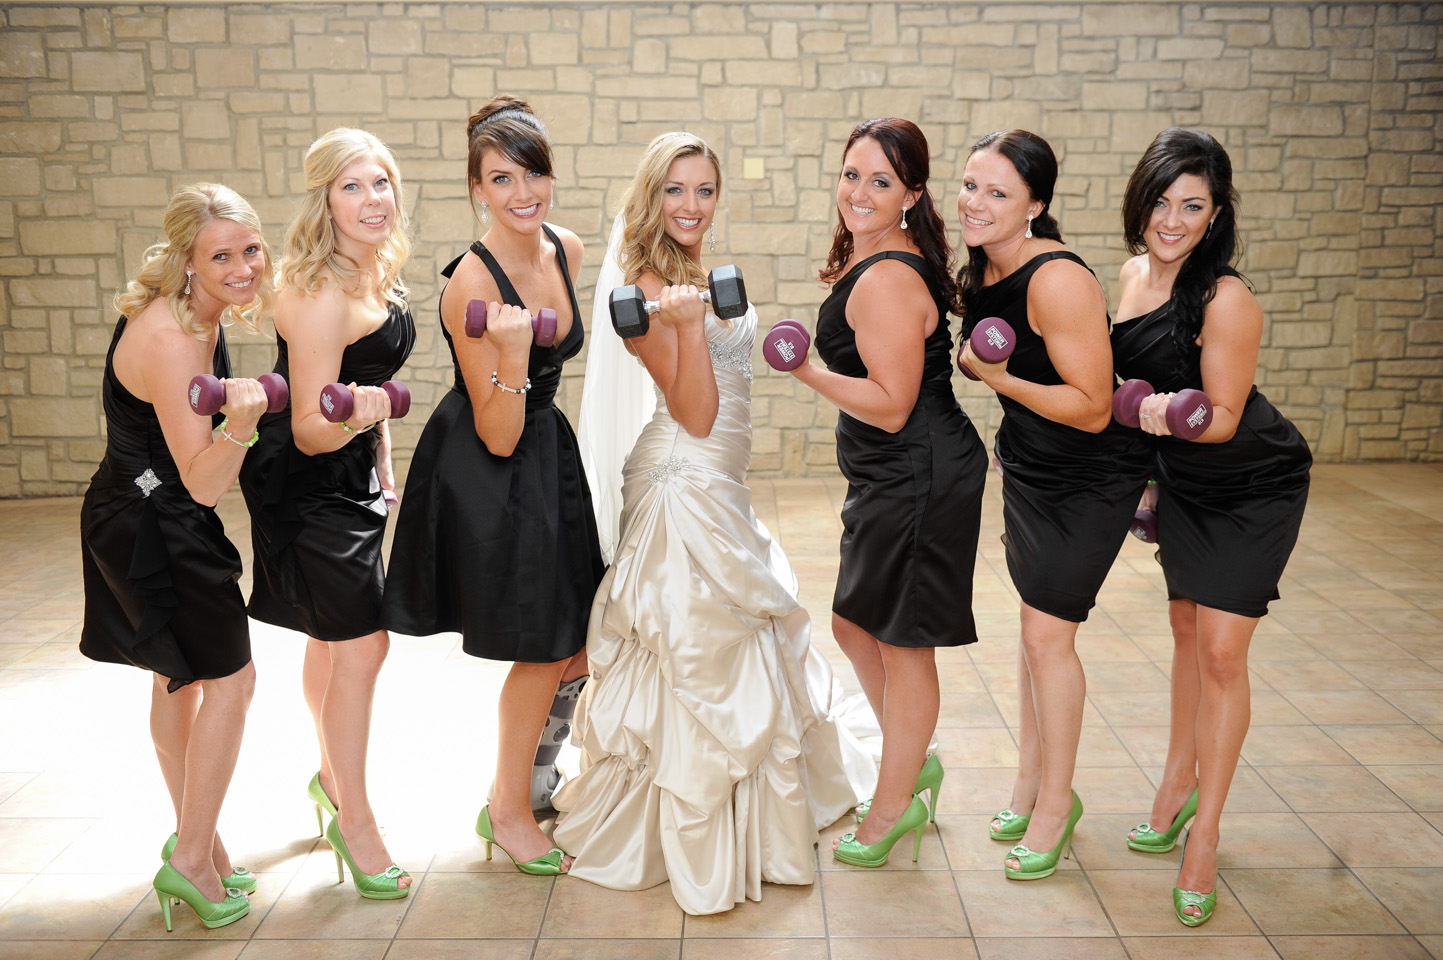 Real bridesmaids lift! Brittany and Derrick got the bridal party in the spirit of the celebration with fun and sweet photos.